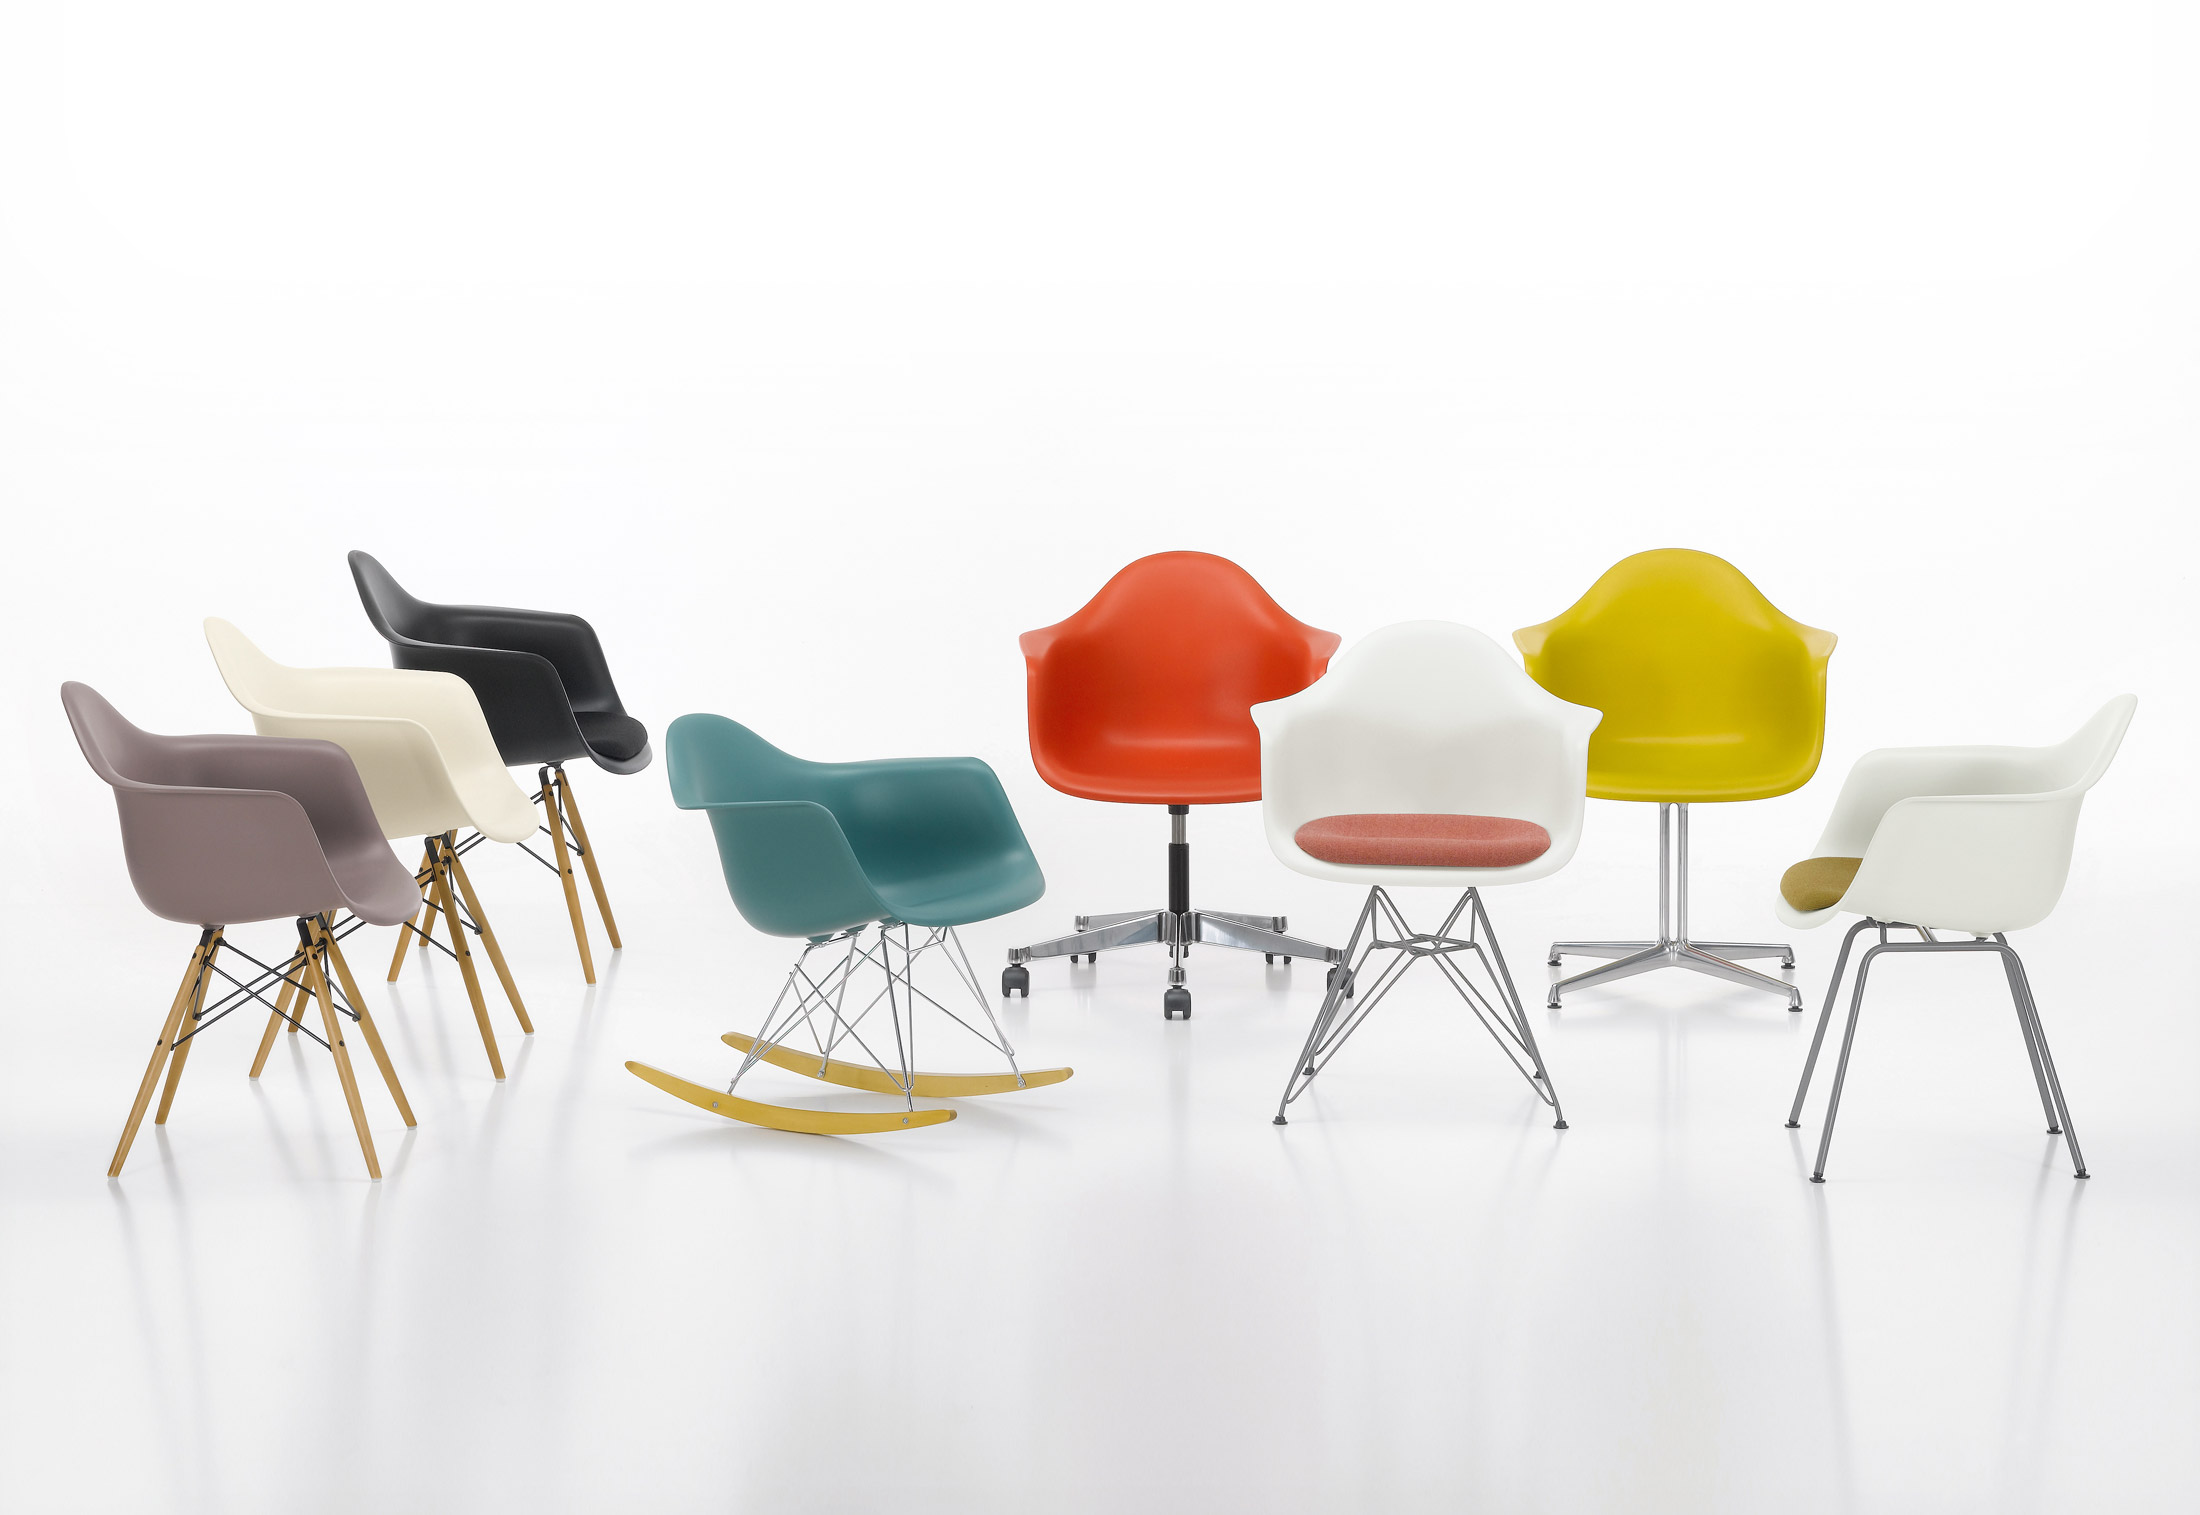 Vitra Sedia A Dondolo Eames Plastic Armchair Rar : Vitra rar. perfect rocking chair rar eames plastic arm vitra with